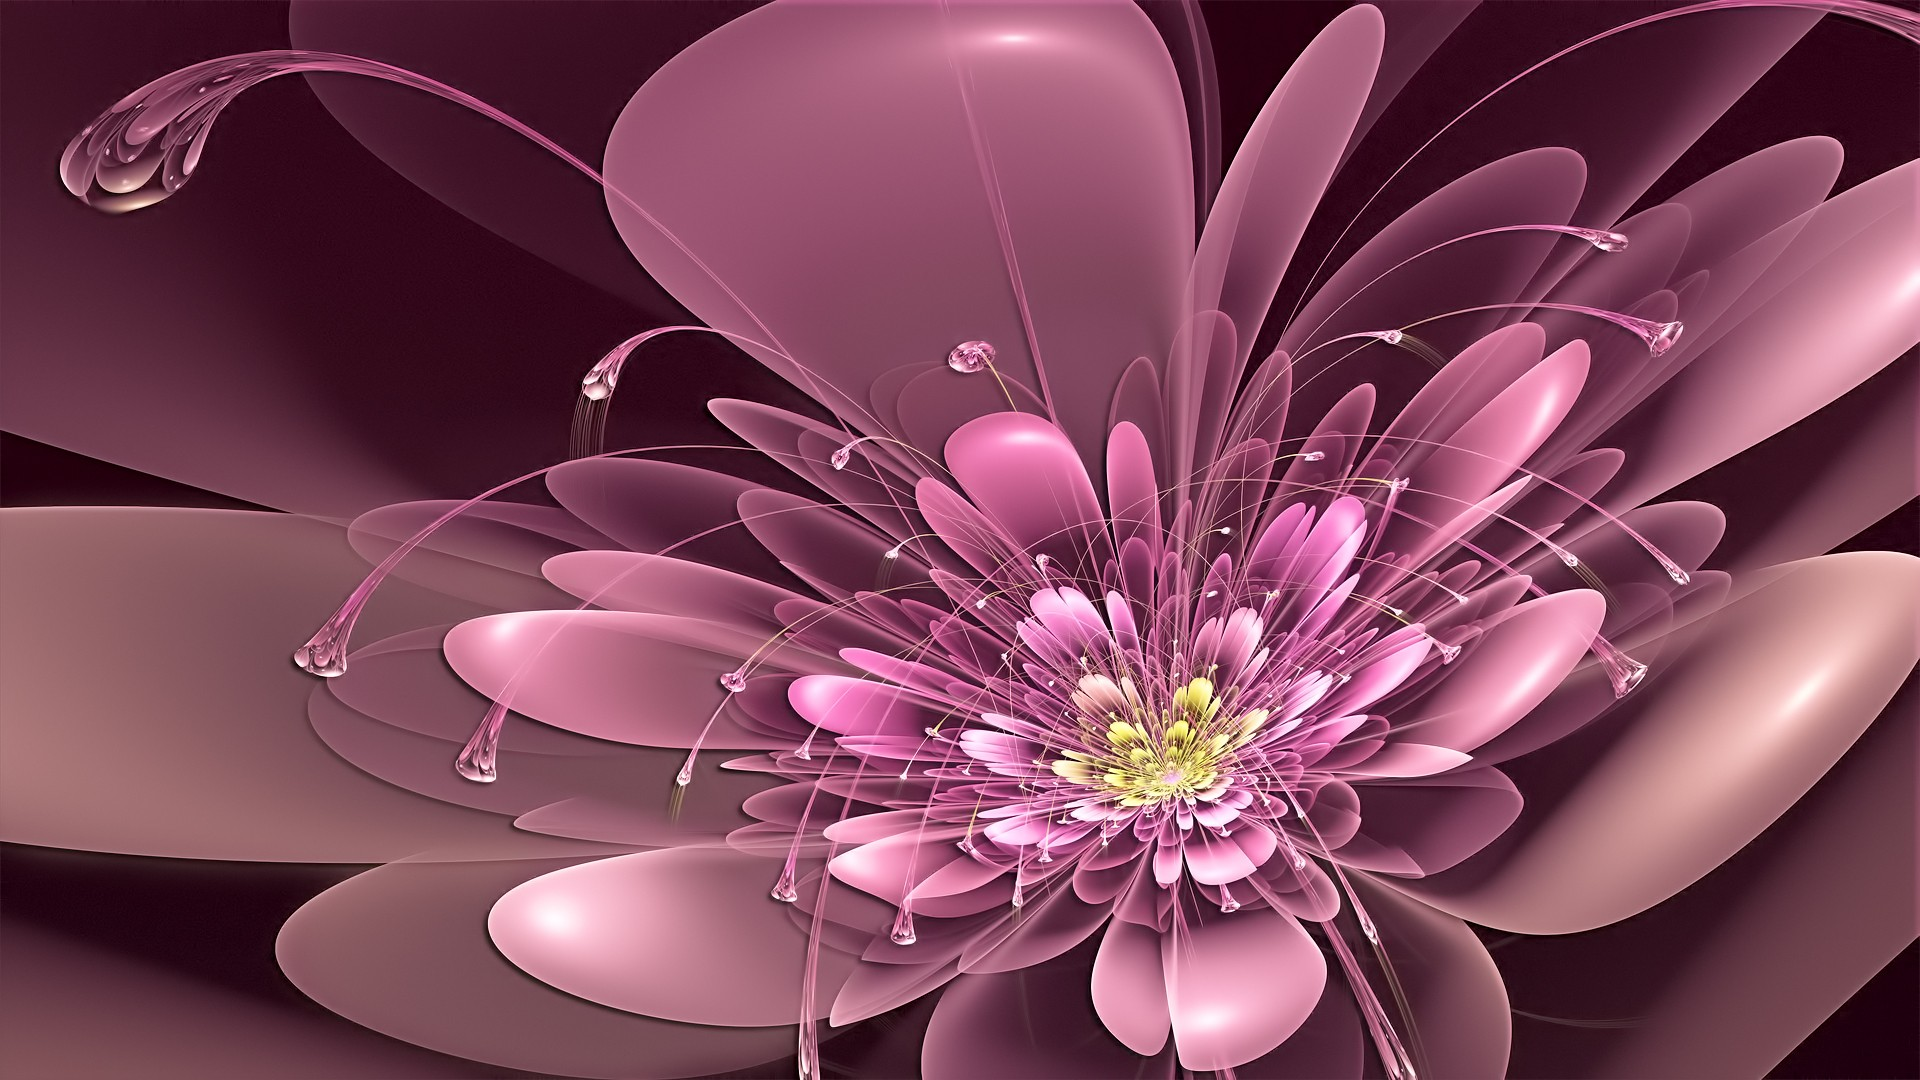 3d flower wallpaper sf wallpaper 3d flower wallpaper mightylinksfo